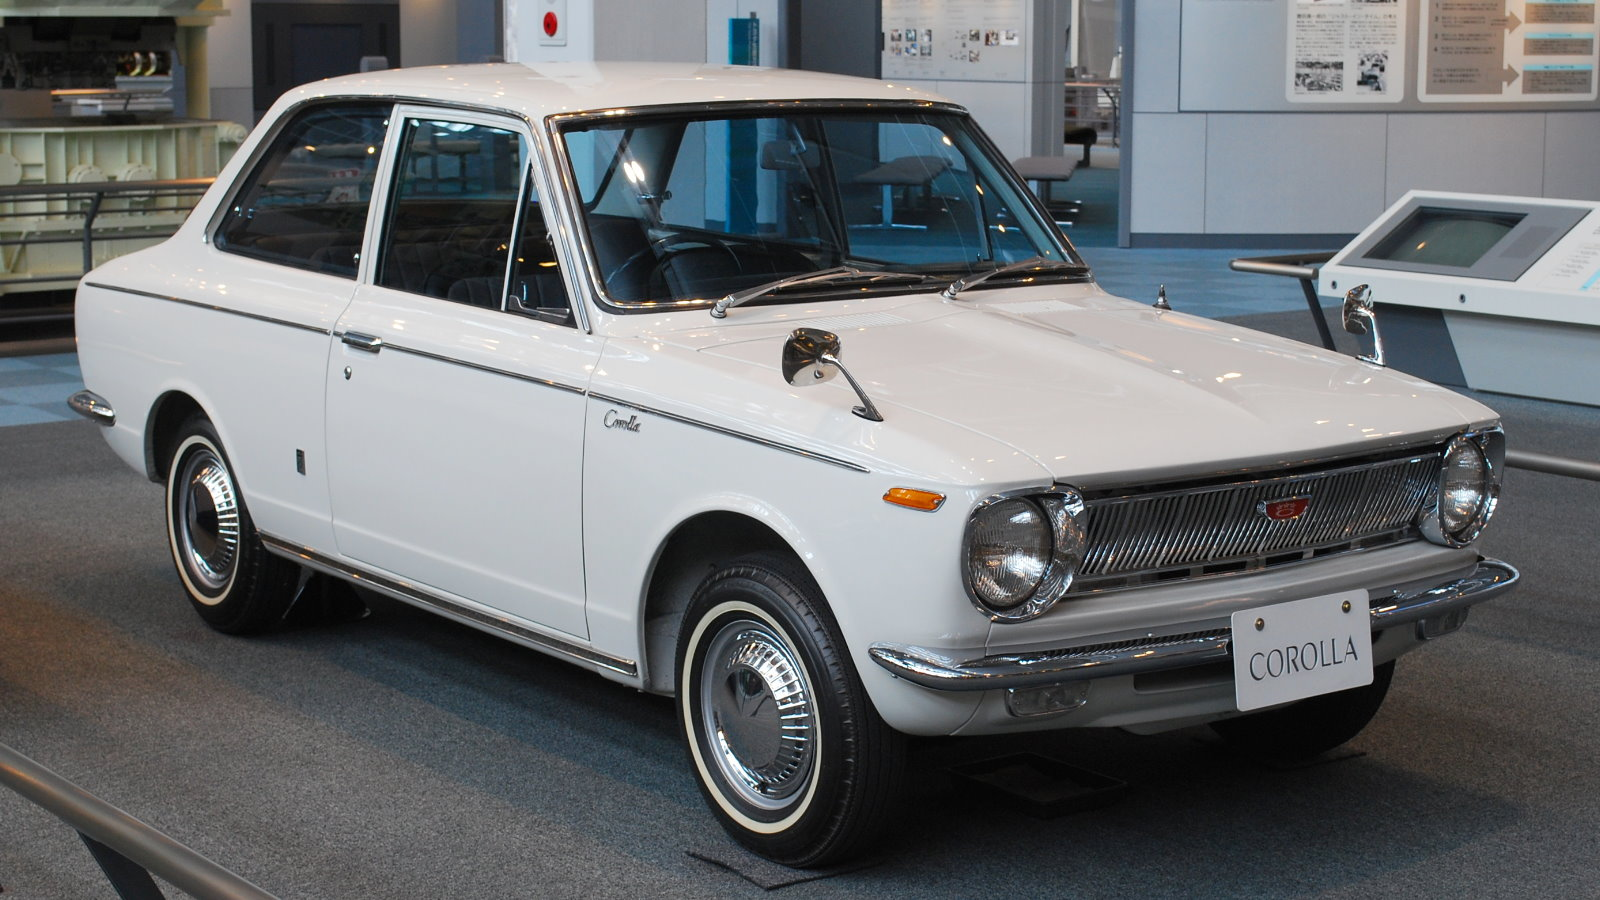 Image result for Toyota Corolla 1966